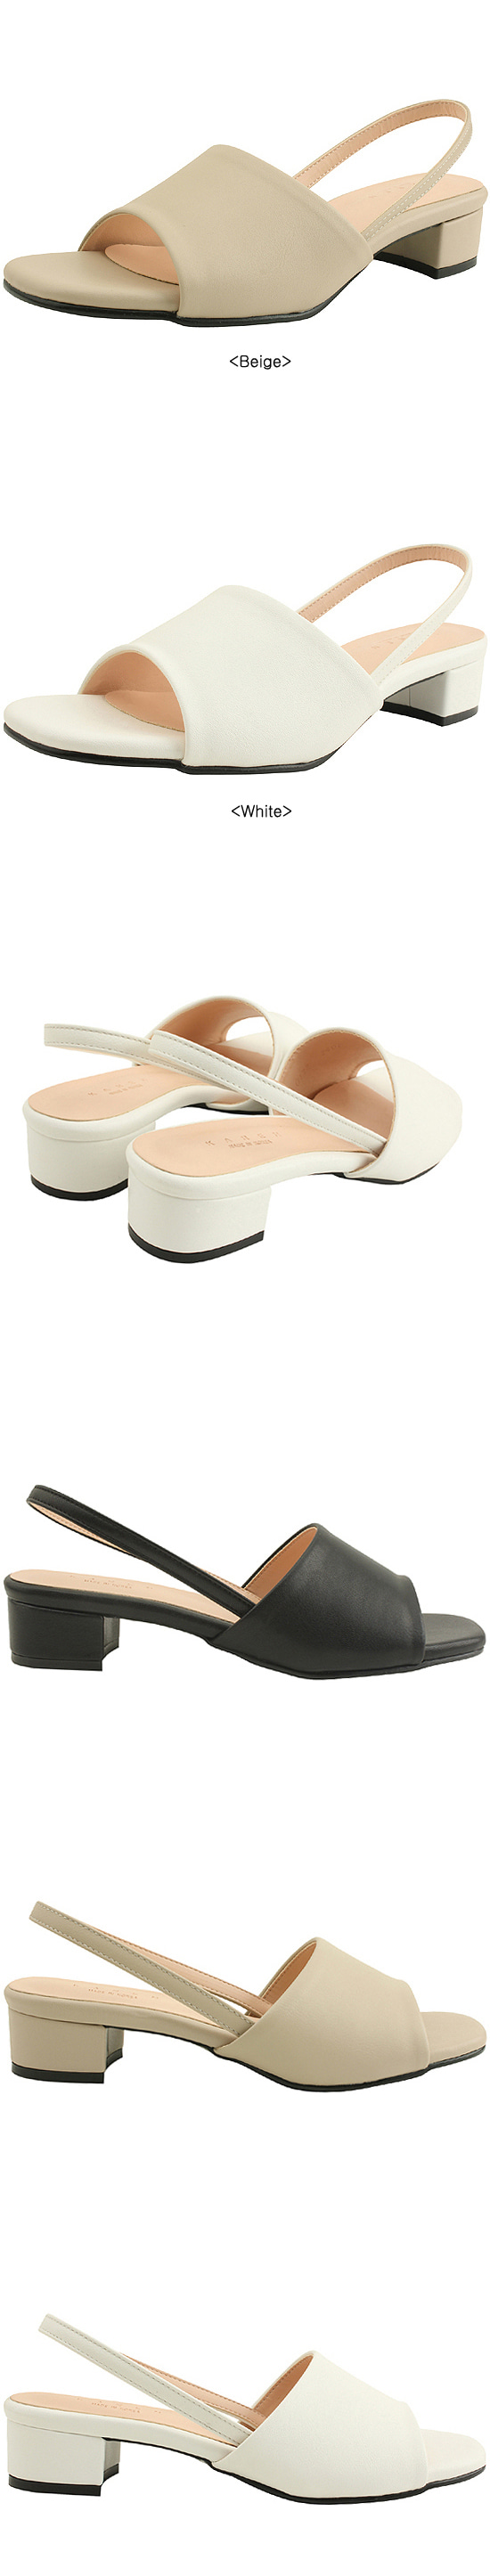 Slingback Low Heel Toe Open Sandals Beige